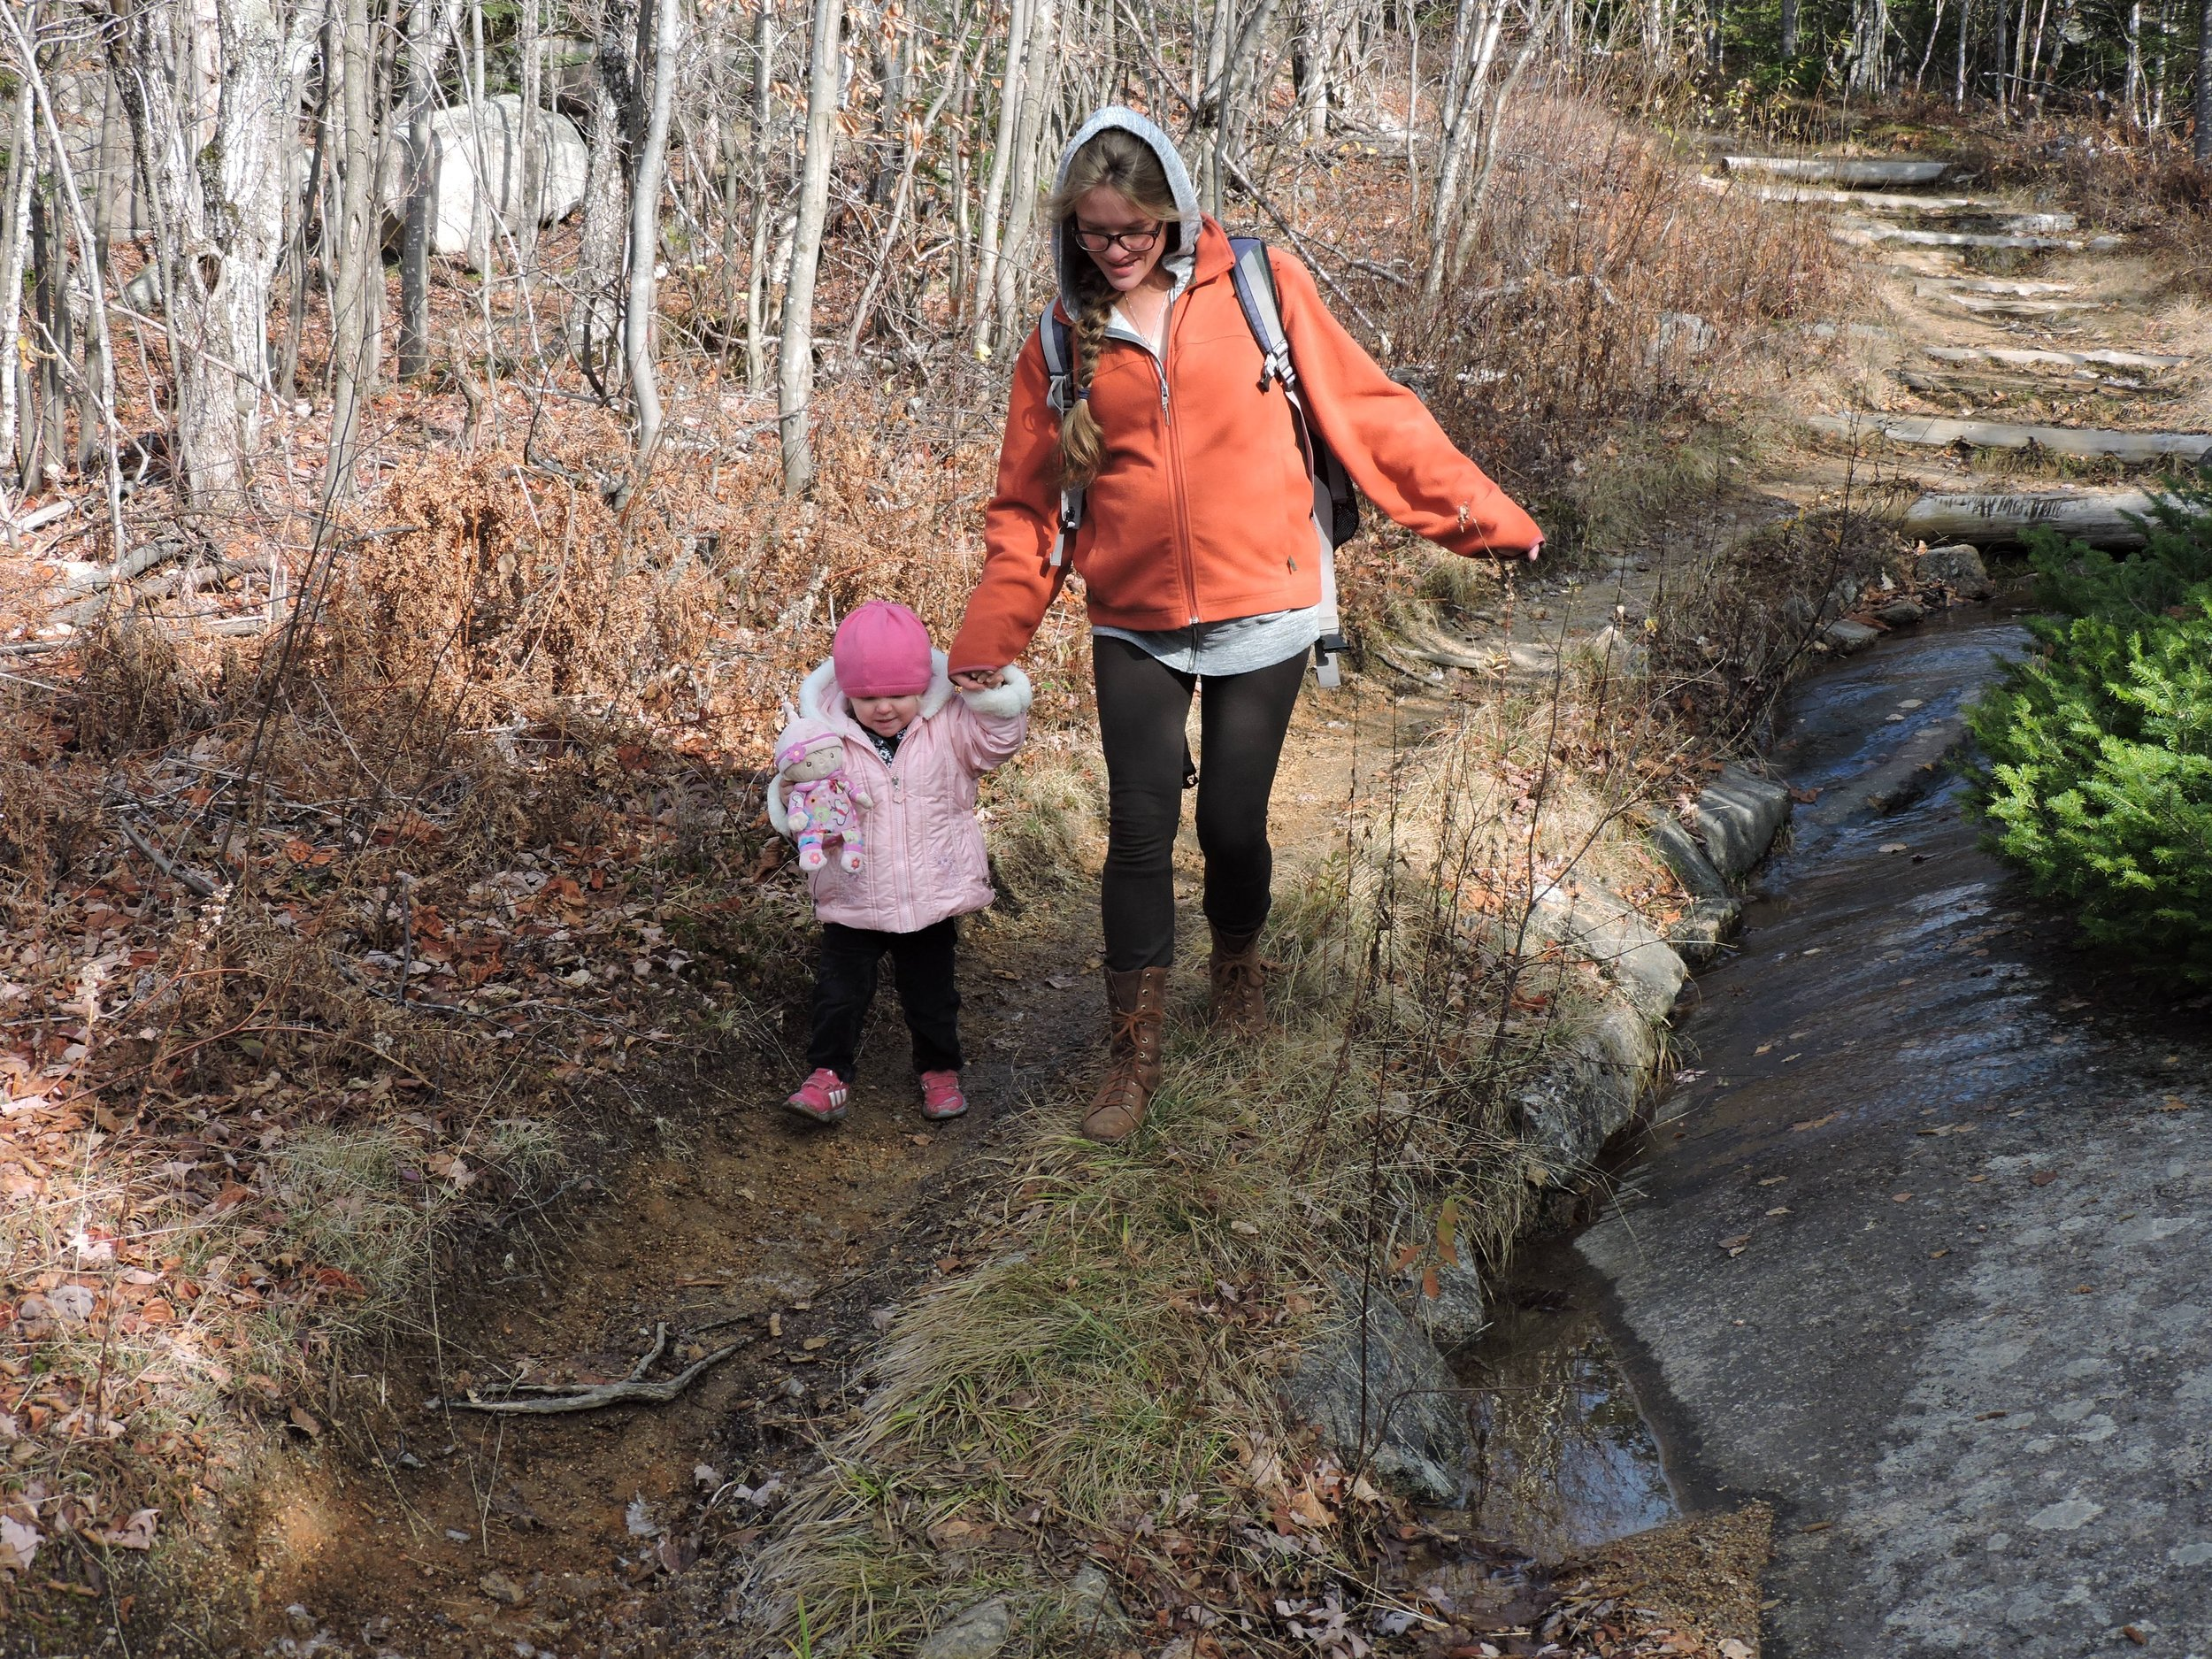 On our final hike of the trip: Black Cap Mountain. We indulged Edith's insistence that Baby come along too.